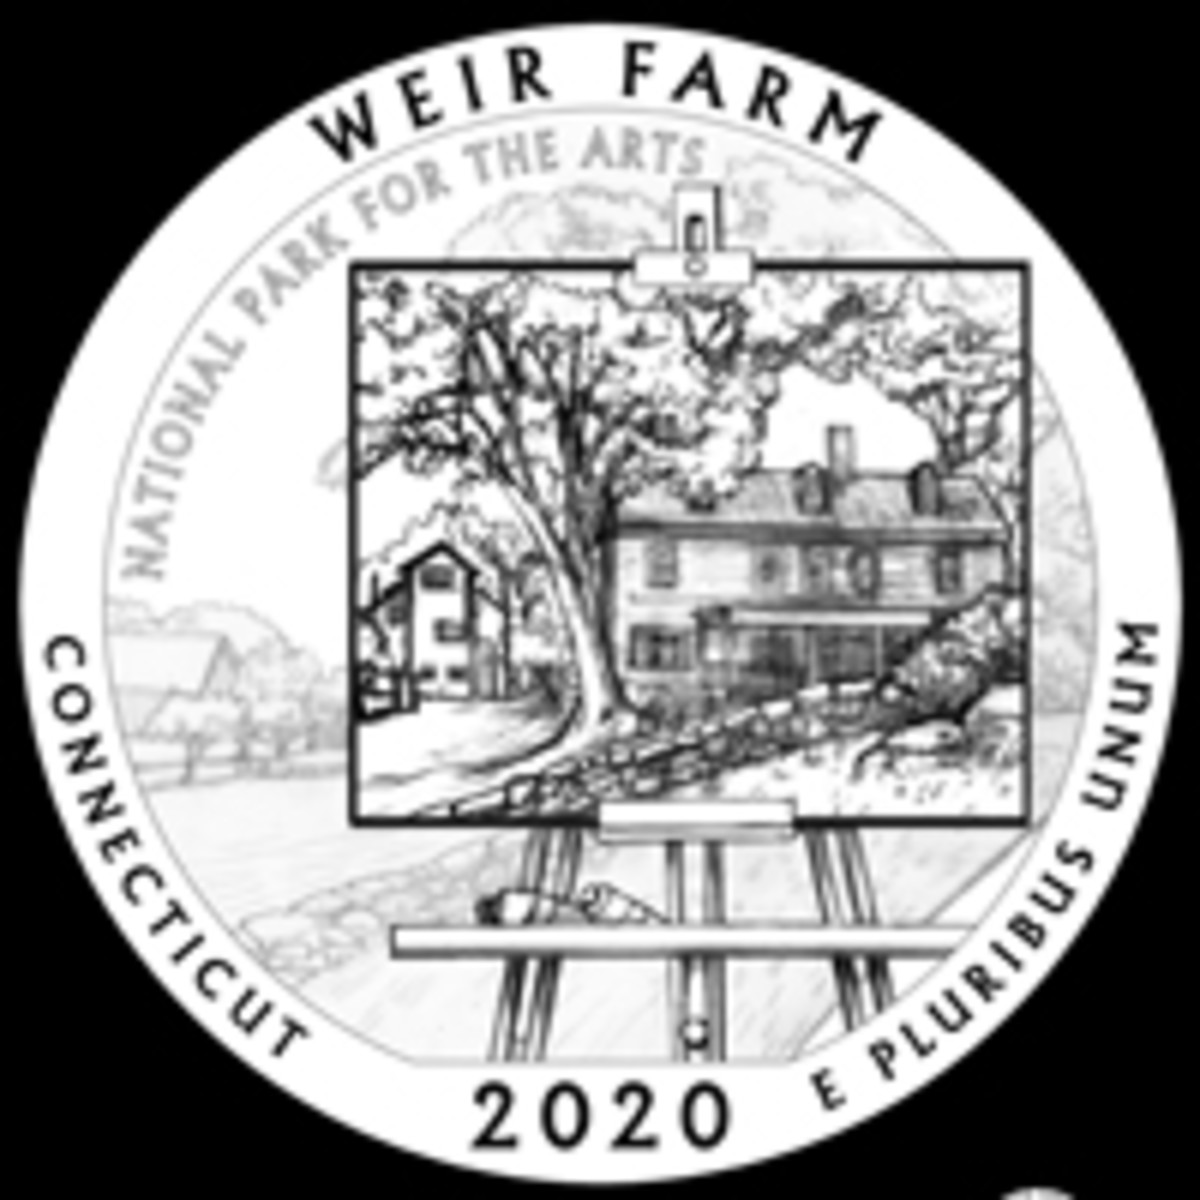 An improved Weir Farm design completed the work of the CCAC on 2020 America the Beautiful quarters. The portrait on easel look is something perhaps borrowed from the 1980 Grant Wood American Arts gold medallion, though much more cleaverly done. On the medallion it was simply a portrait on an easel that was not part of a larger landscape.